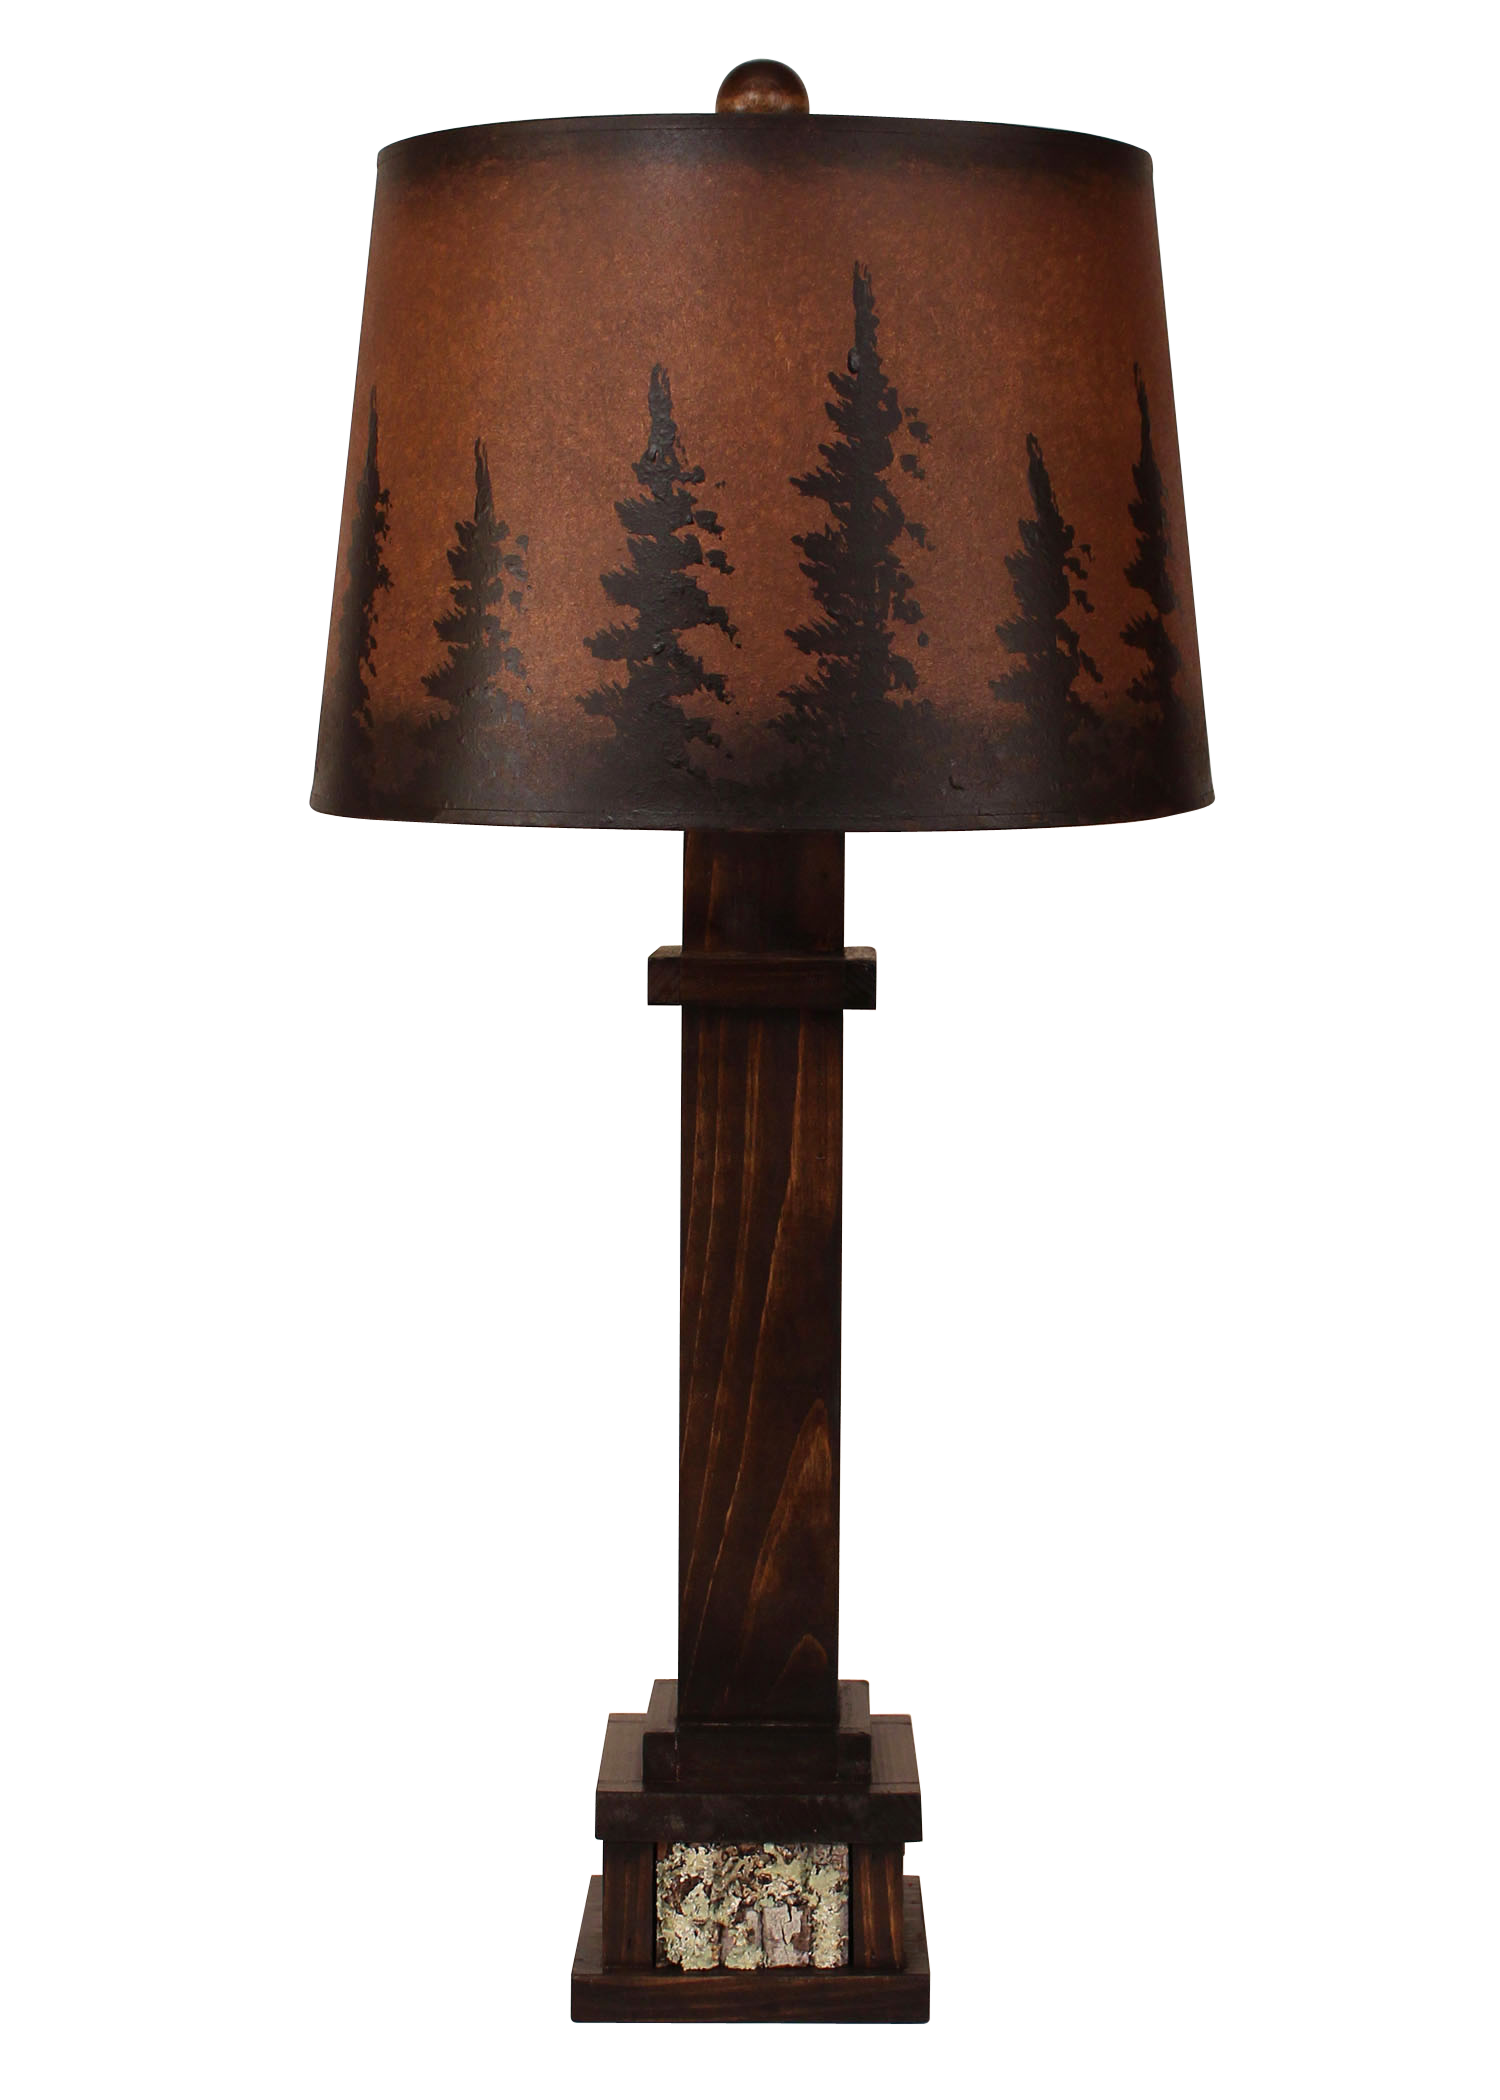 Aspen Square Wooden Table Lamp with Poplar Bark Accent- Pine Tree Grove Shade - Coast Lamp Shop